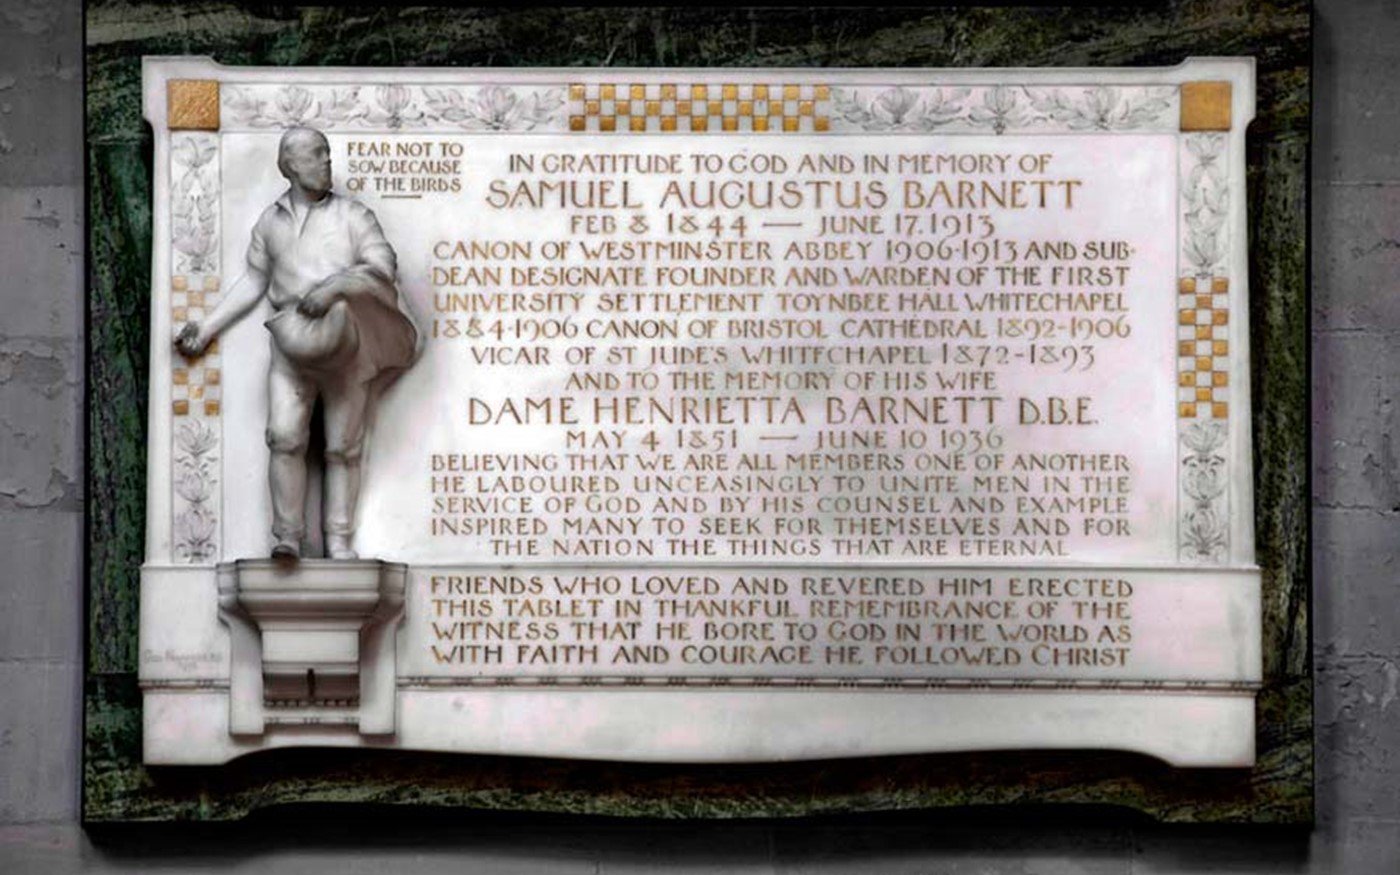 Samuel and Henrietta Barnett